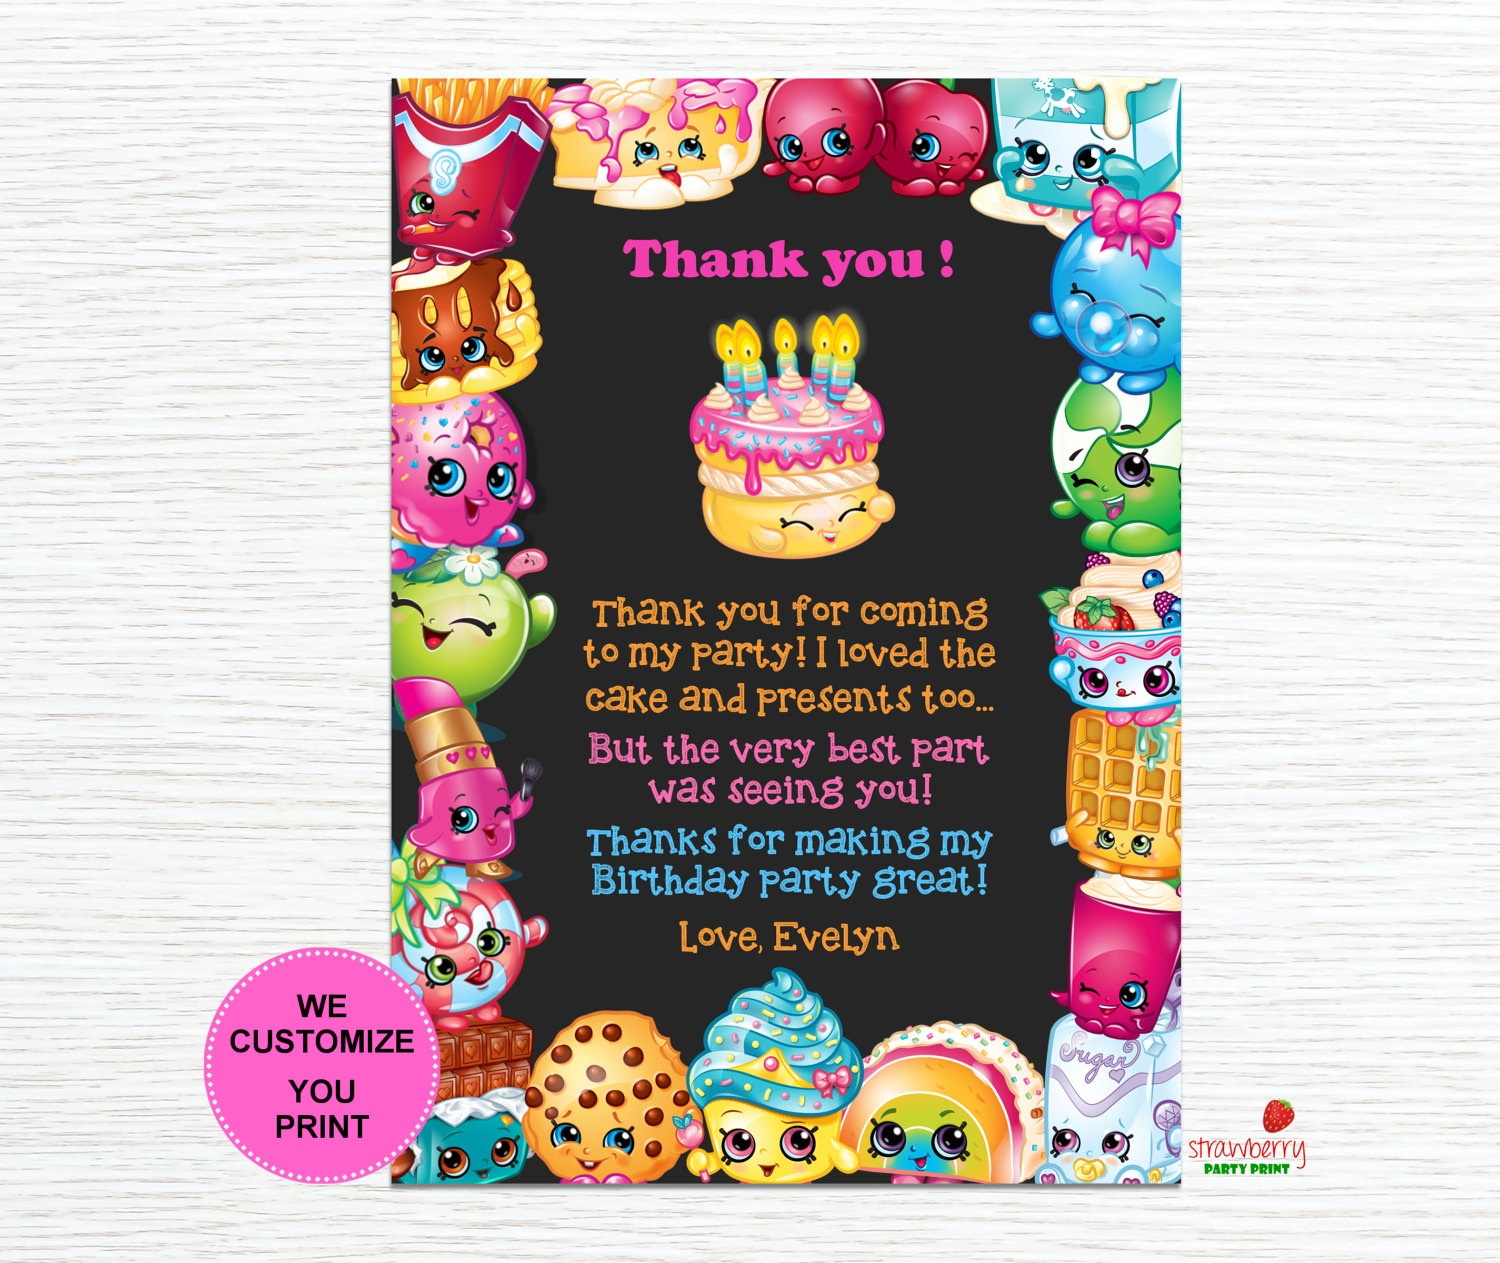 Shopkins Thank You Cards Shopkins Birthday Thank You Notes | Etsy - Shopkins Thank You Cards Free Printable